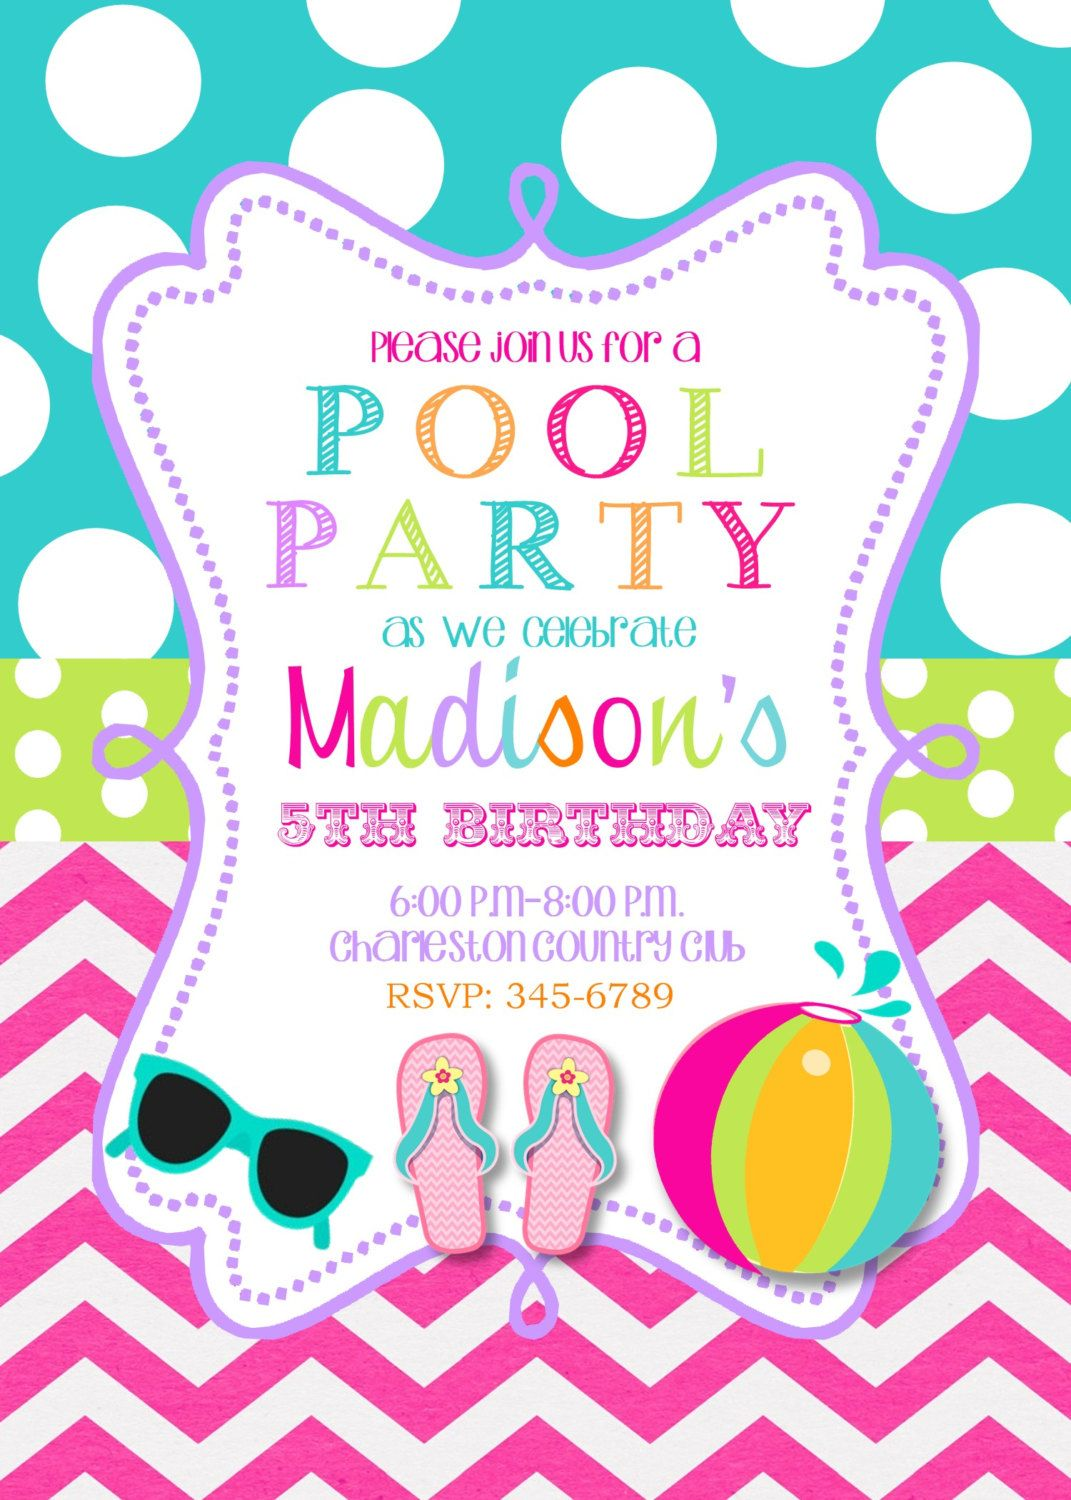 Birthday invitations brilliant cute pool party birthday party birthday invitations brilliant cute pool party birthday party invitation card inspiration in colorful theme astonishing pool party invitation wording stopboris Images